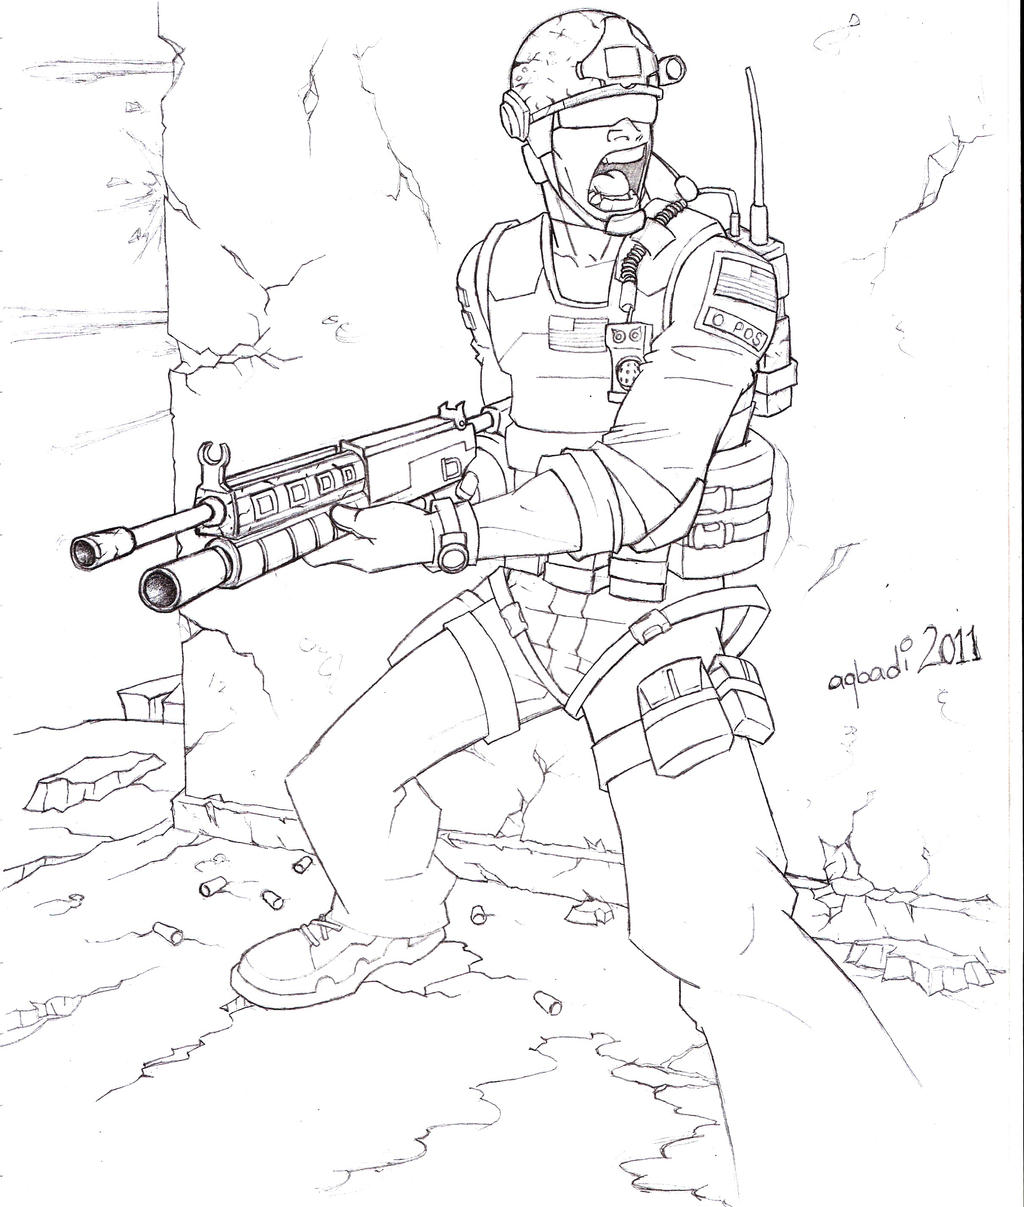 Call of duty modernwarfare 3 by mohammedagbadi on deviantart for Call of duty coloring page